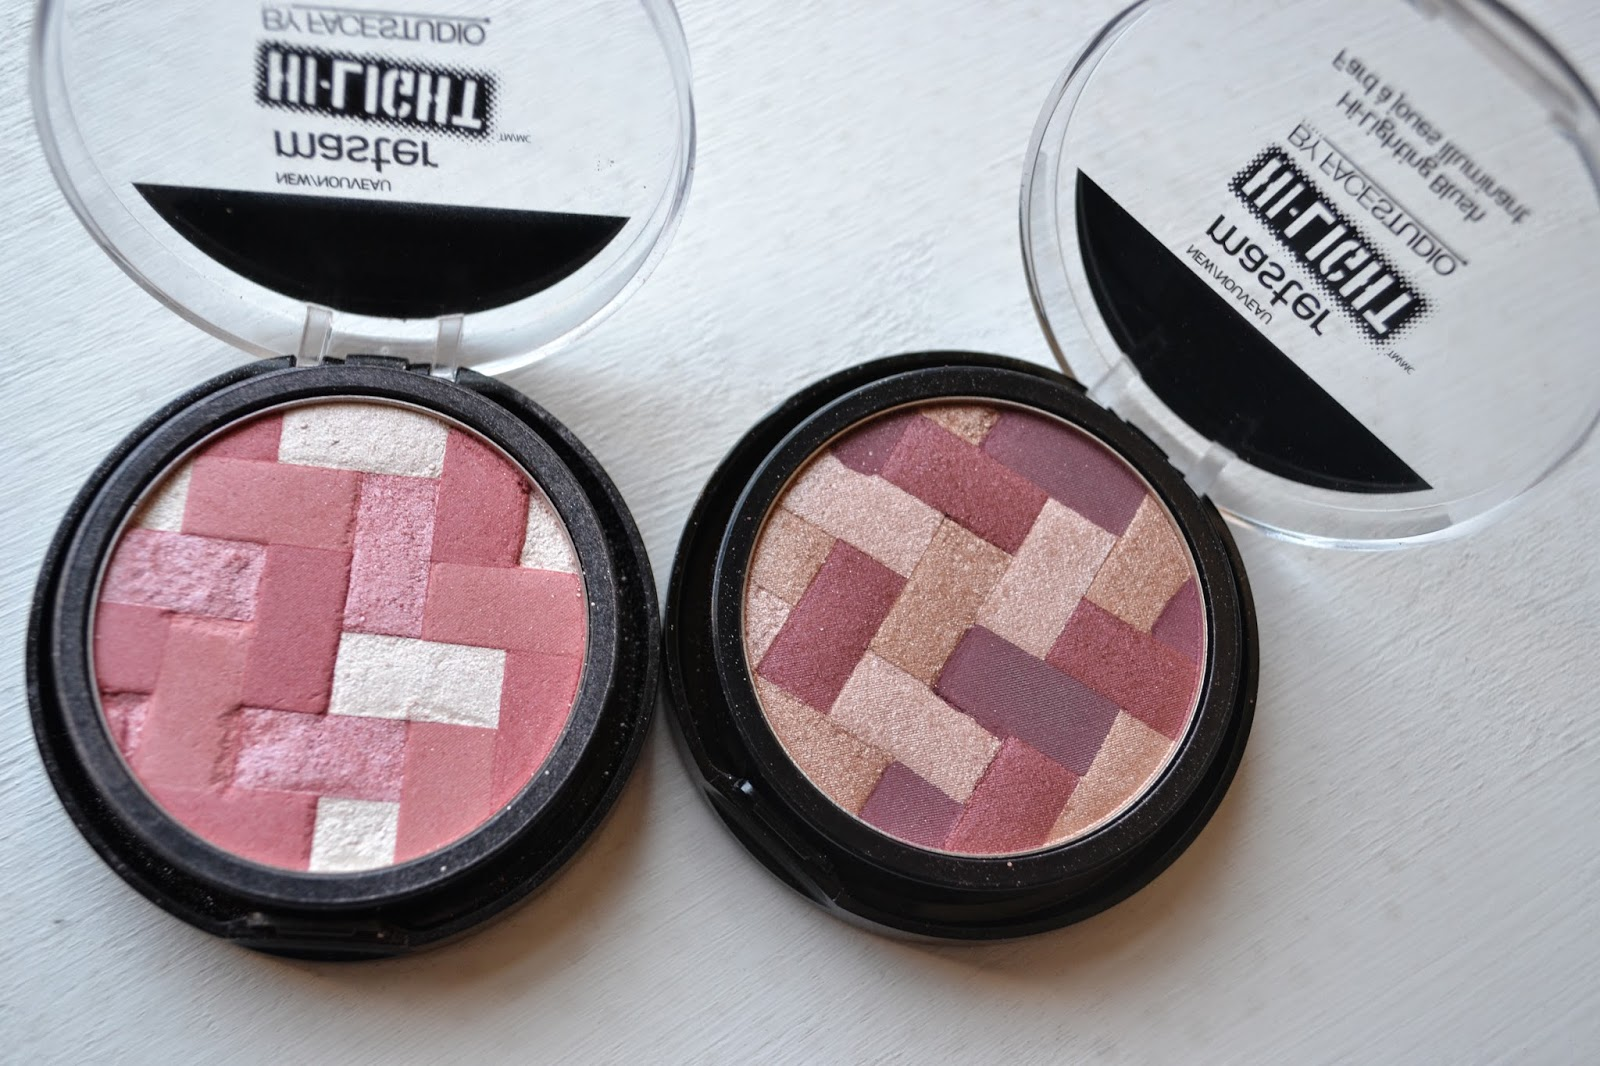 Maybelline New York Face Studio Master Hi-Light blushes